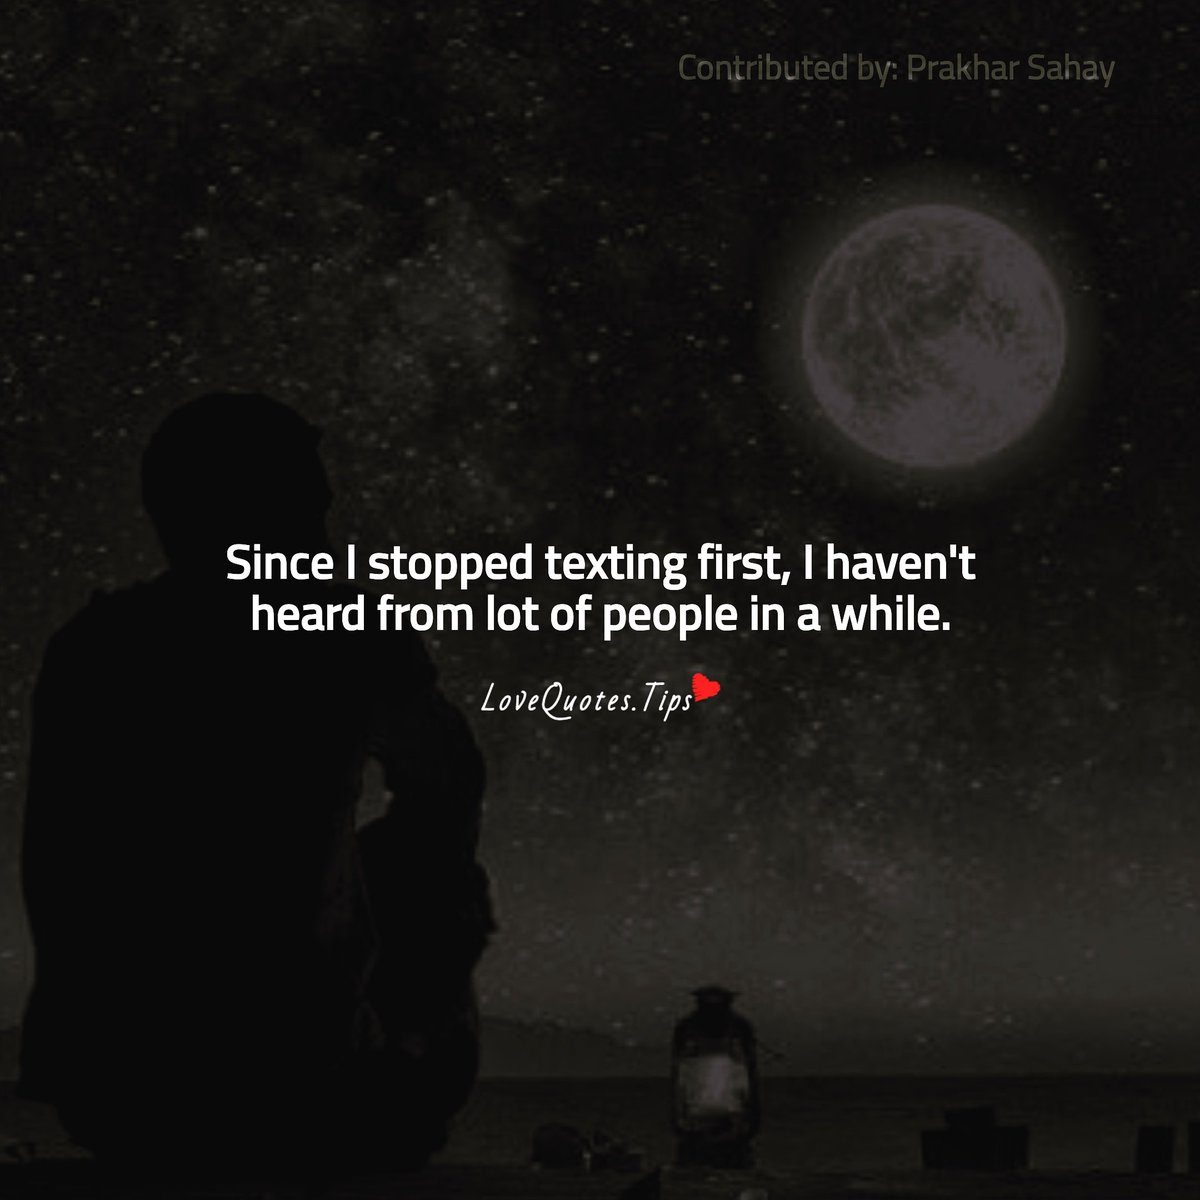 Since I stopped #texting first, I haven't heard from lot of people in a while. #Lovequotes #ťhoughtofthedaypic.twitter.com/lf6GvLcZJo